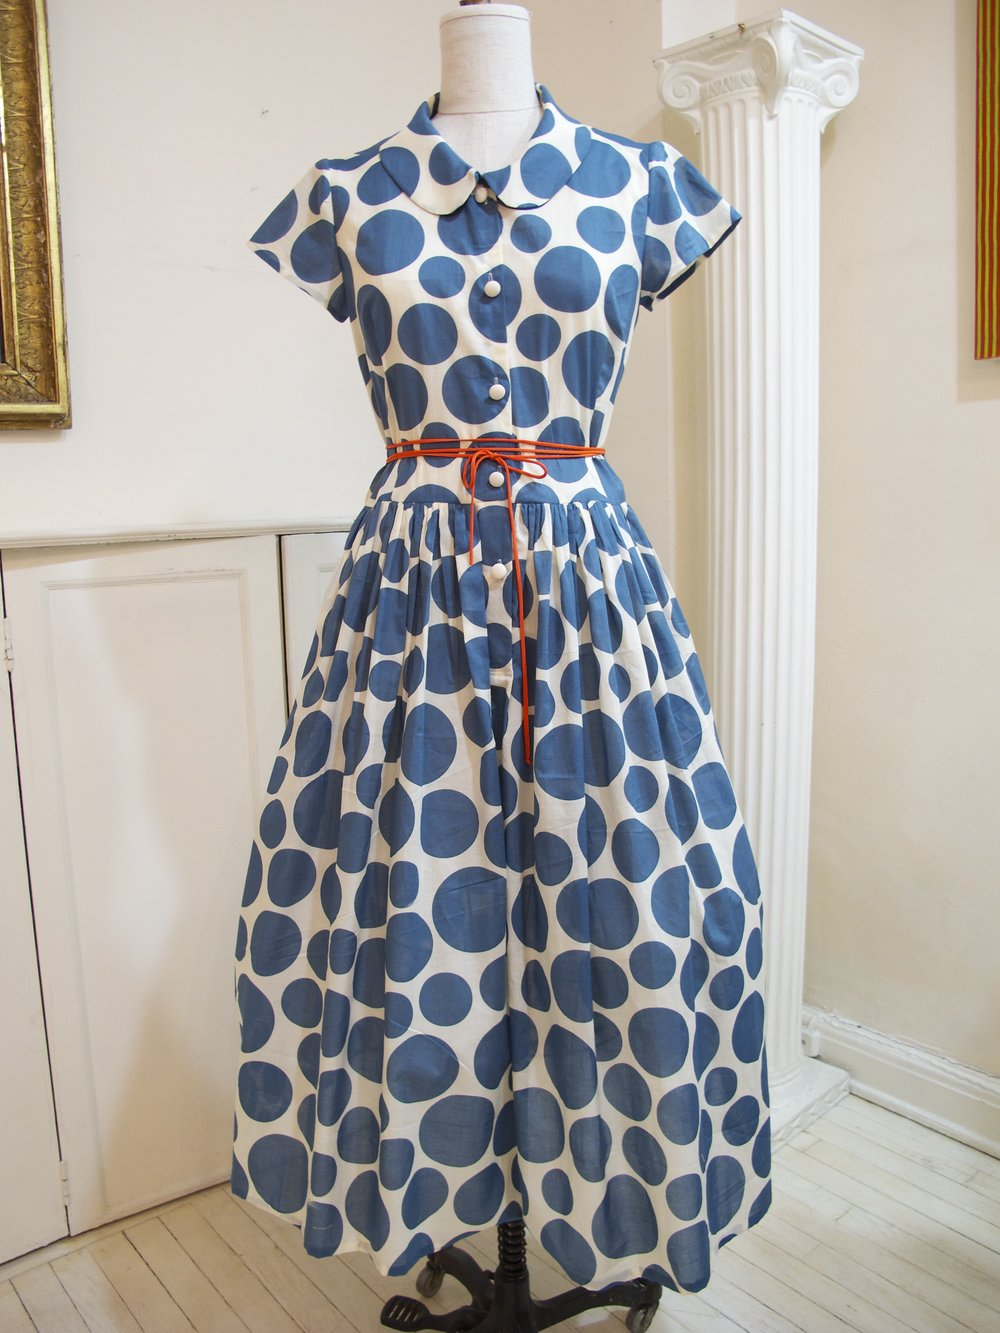 cotton voile polka-dot print shirt dress with fabric cord tie belt